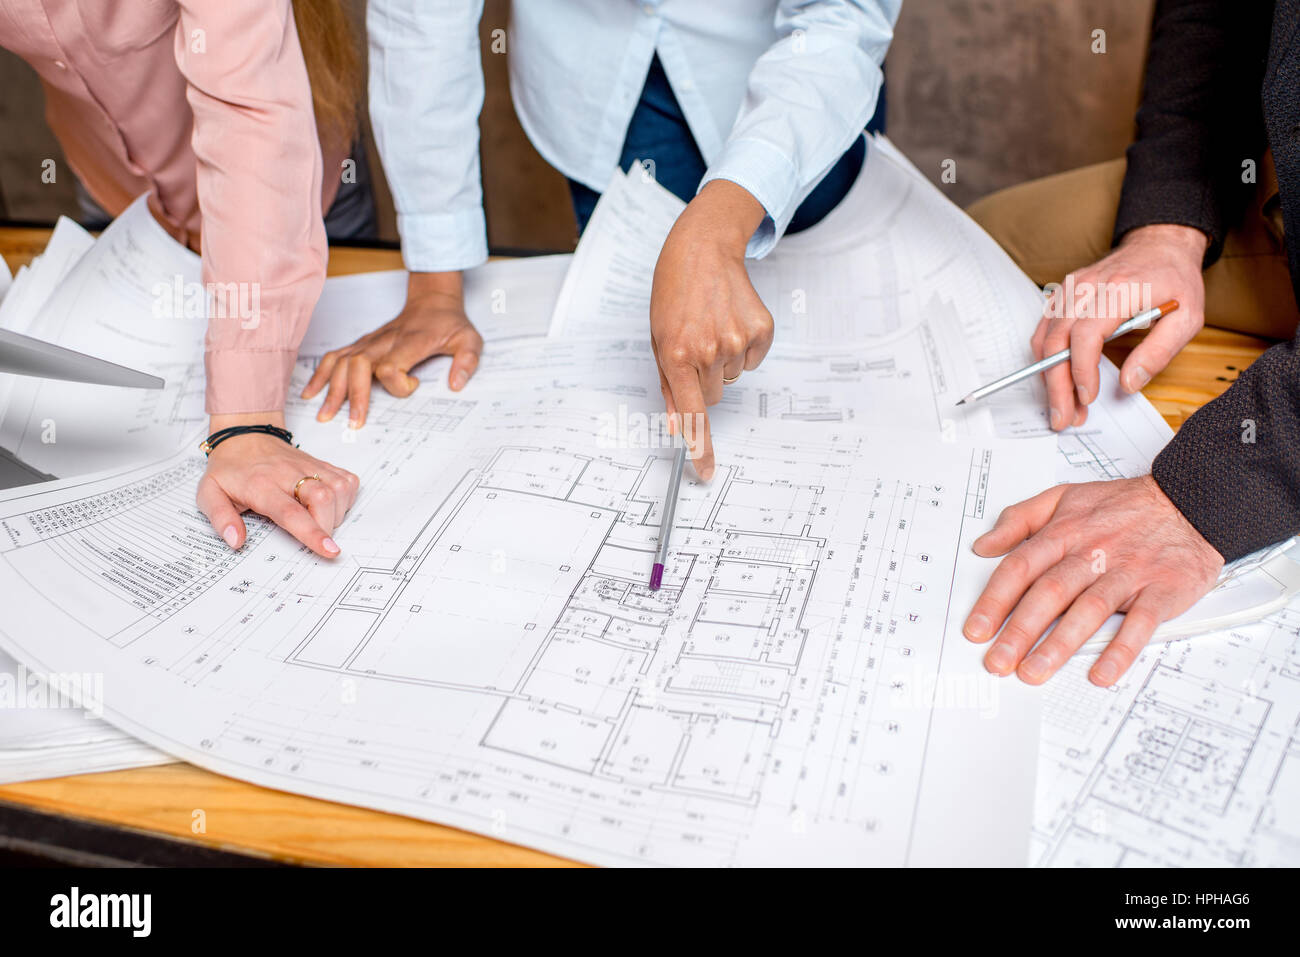 Working on architectural drawings Stock Photo